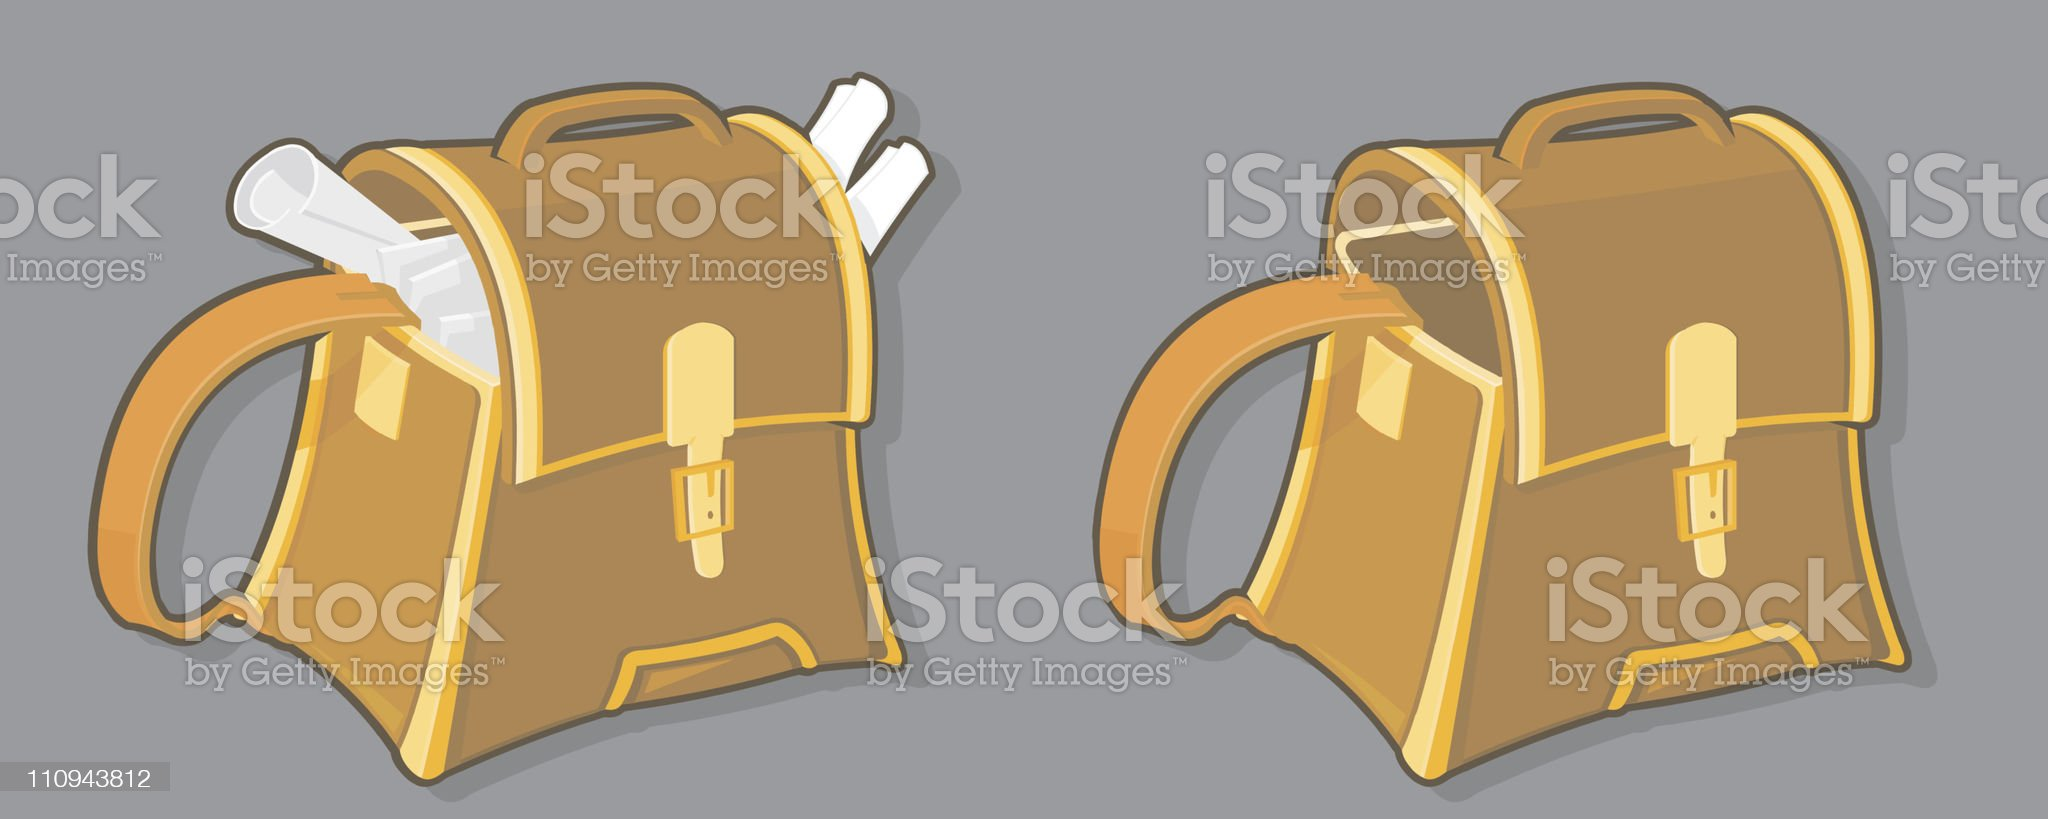 Leather Bag royalty-free stock vector art